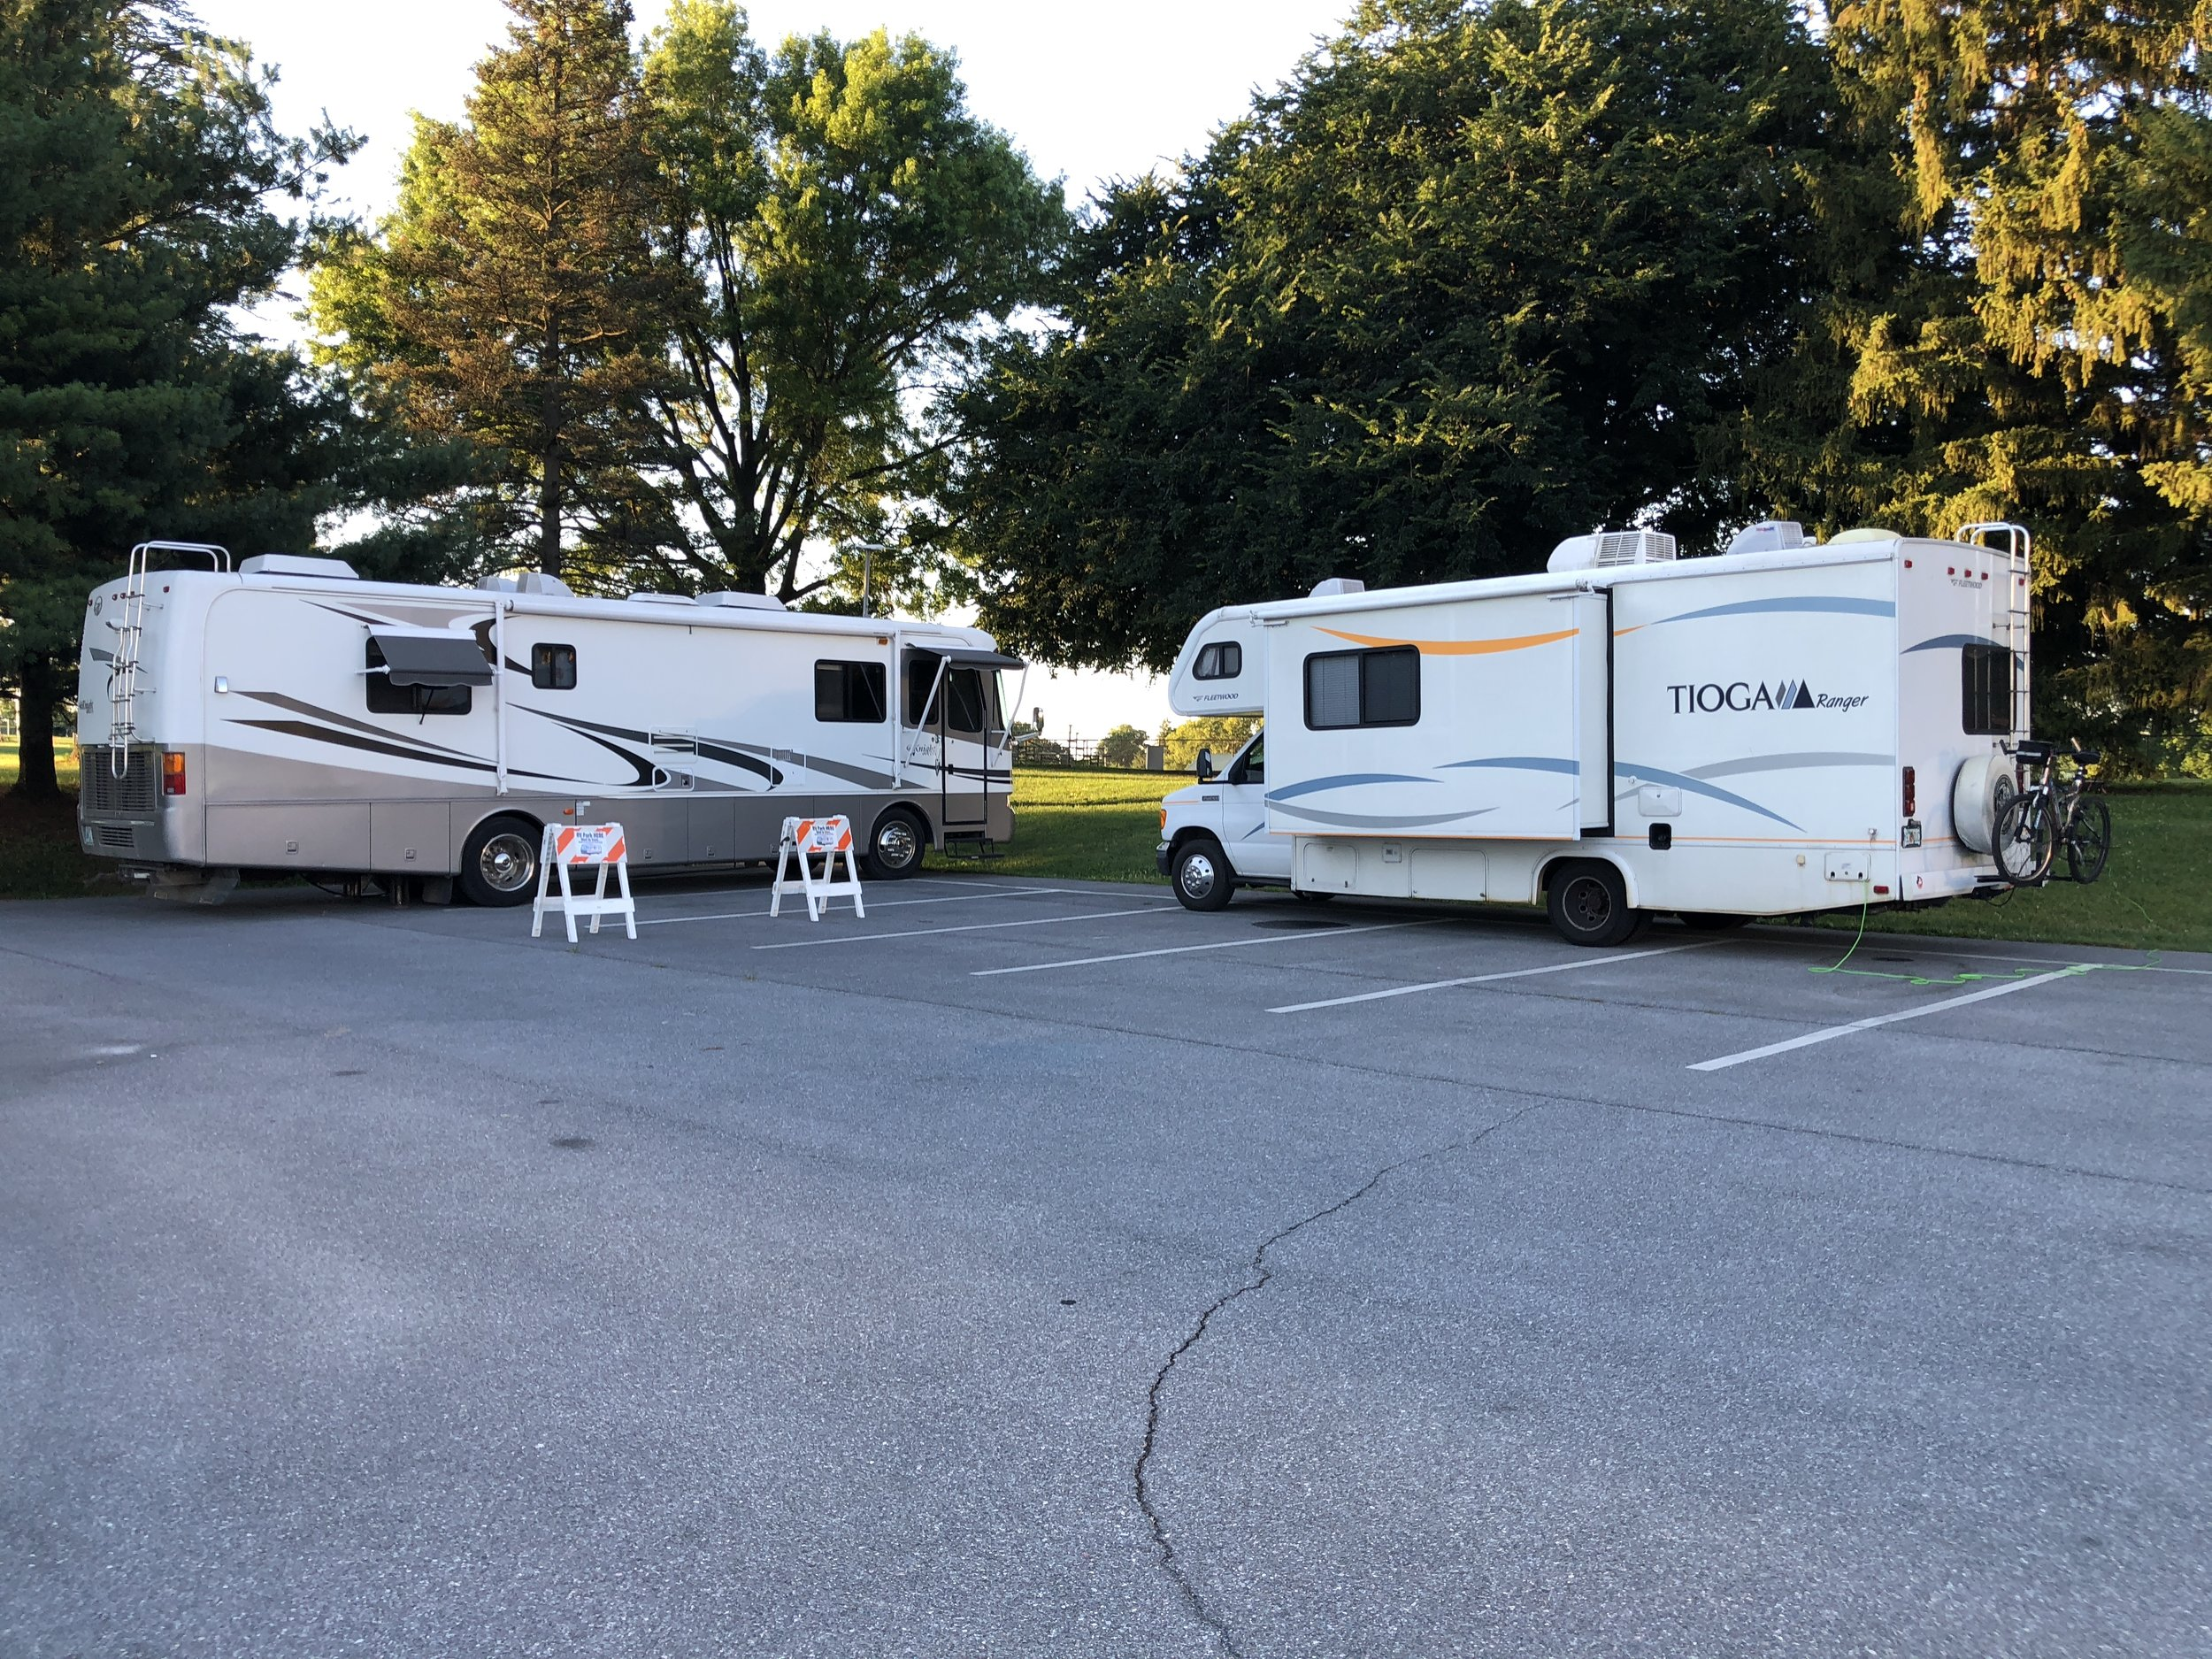 A campground with two sites, shady and peaceful.